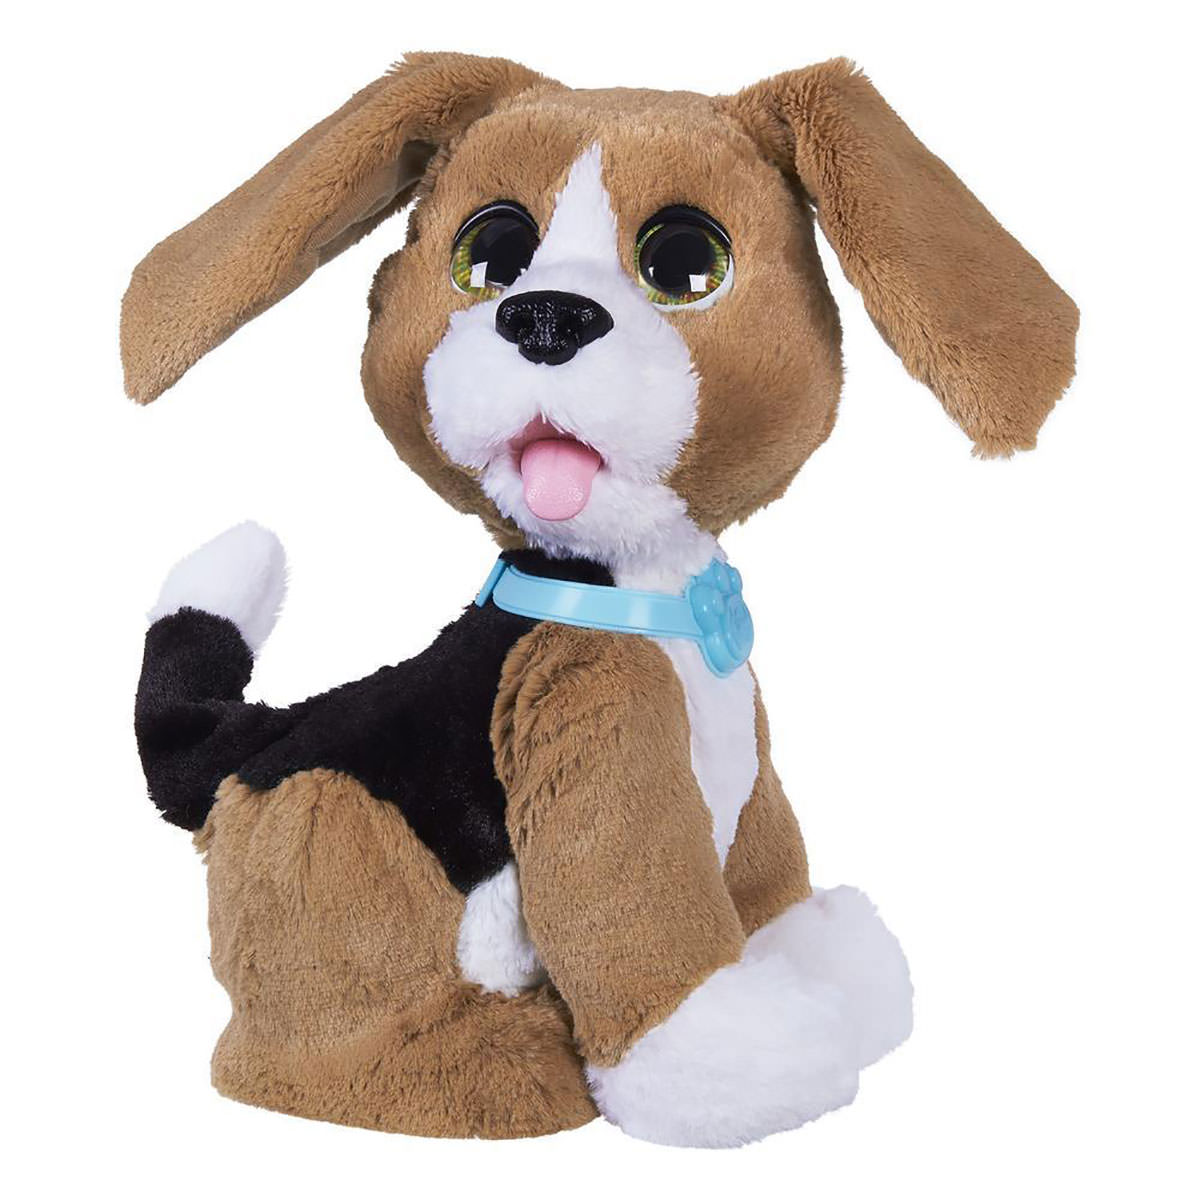 Club Petz Lucy the Puppy Sing and Dance - Soft Toys Ireland |Real Friends Toys For Lucy